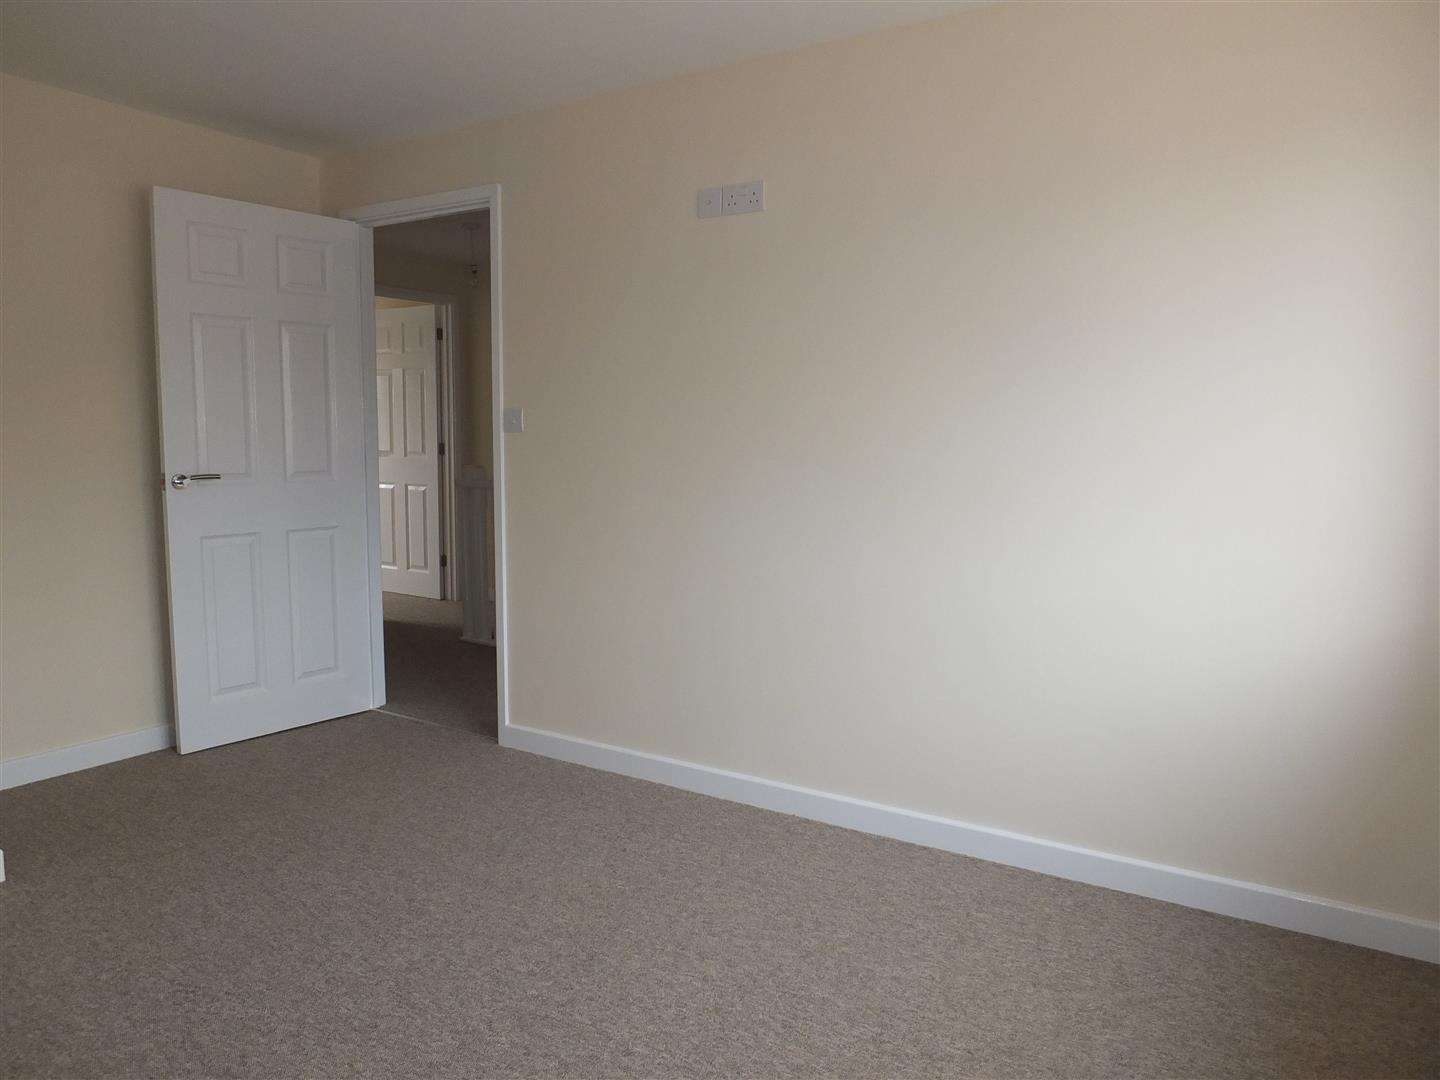 3 bed house to rent in Little London, Long Sutton 5